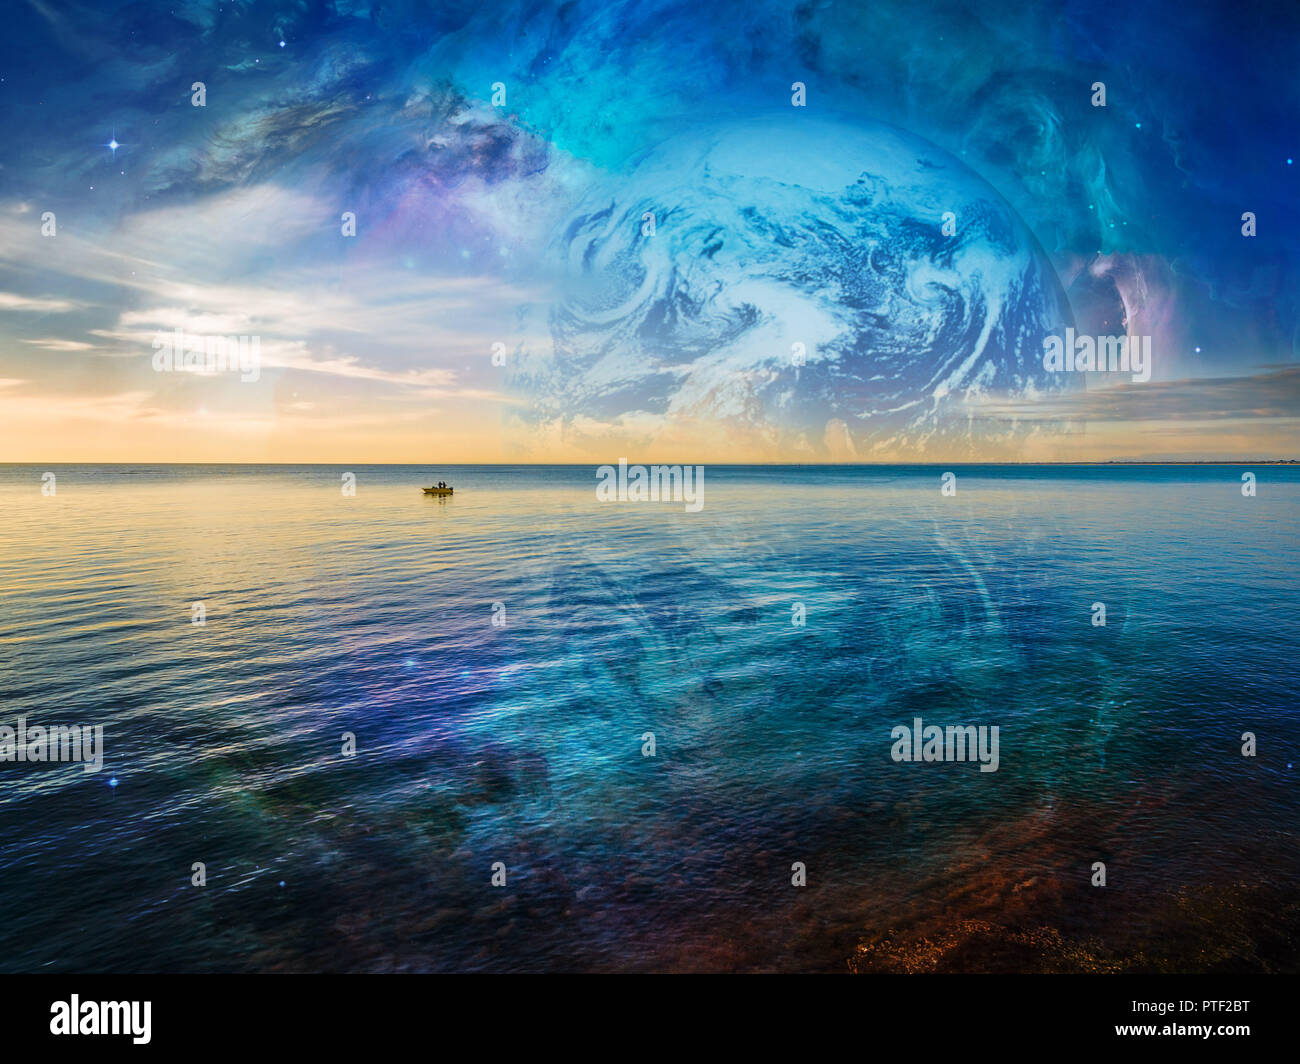 Fantasy landscape - lonely fishing boat floating on tranquil ocean water with planet and galaxy in the skies. Elements of this image are furnished by  Stock Photo